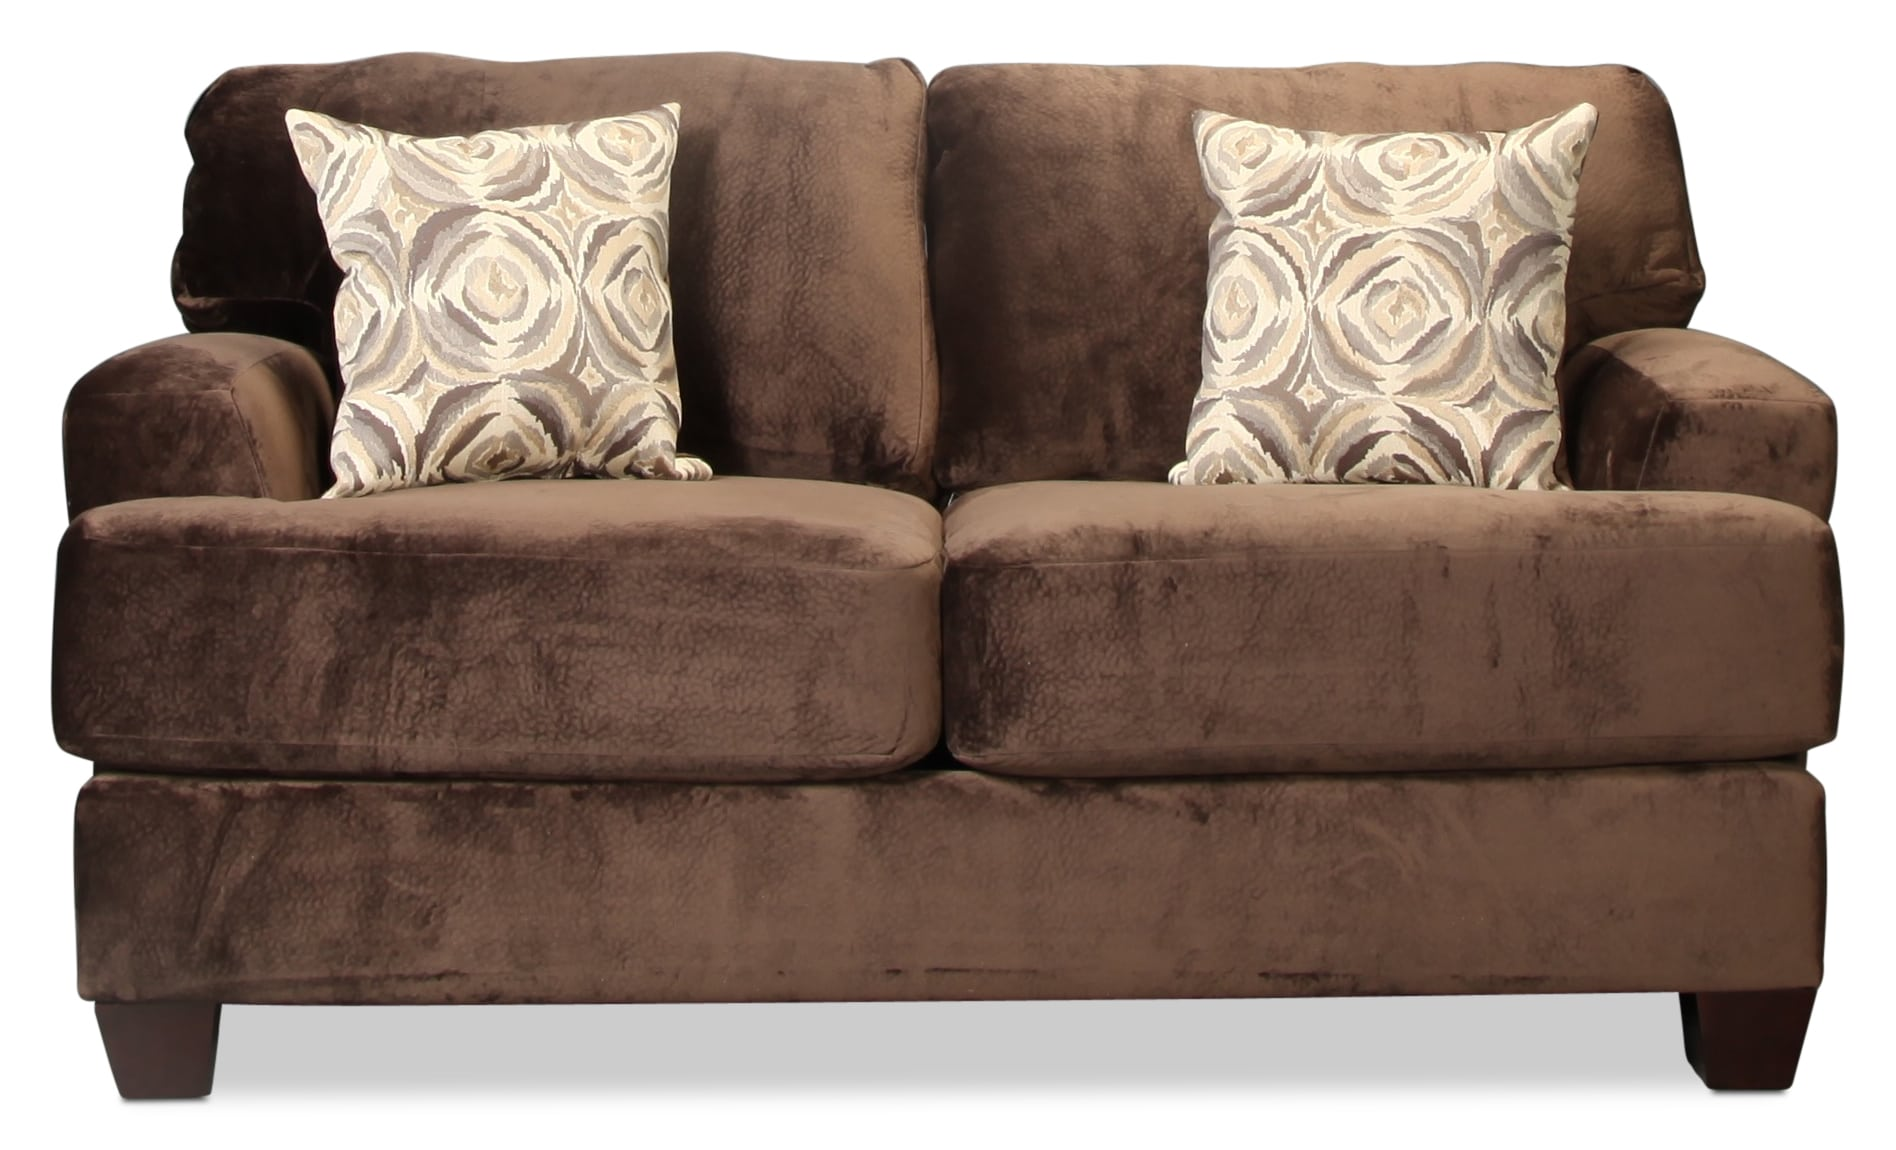 Montclaire Loveseat - Chocolate